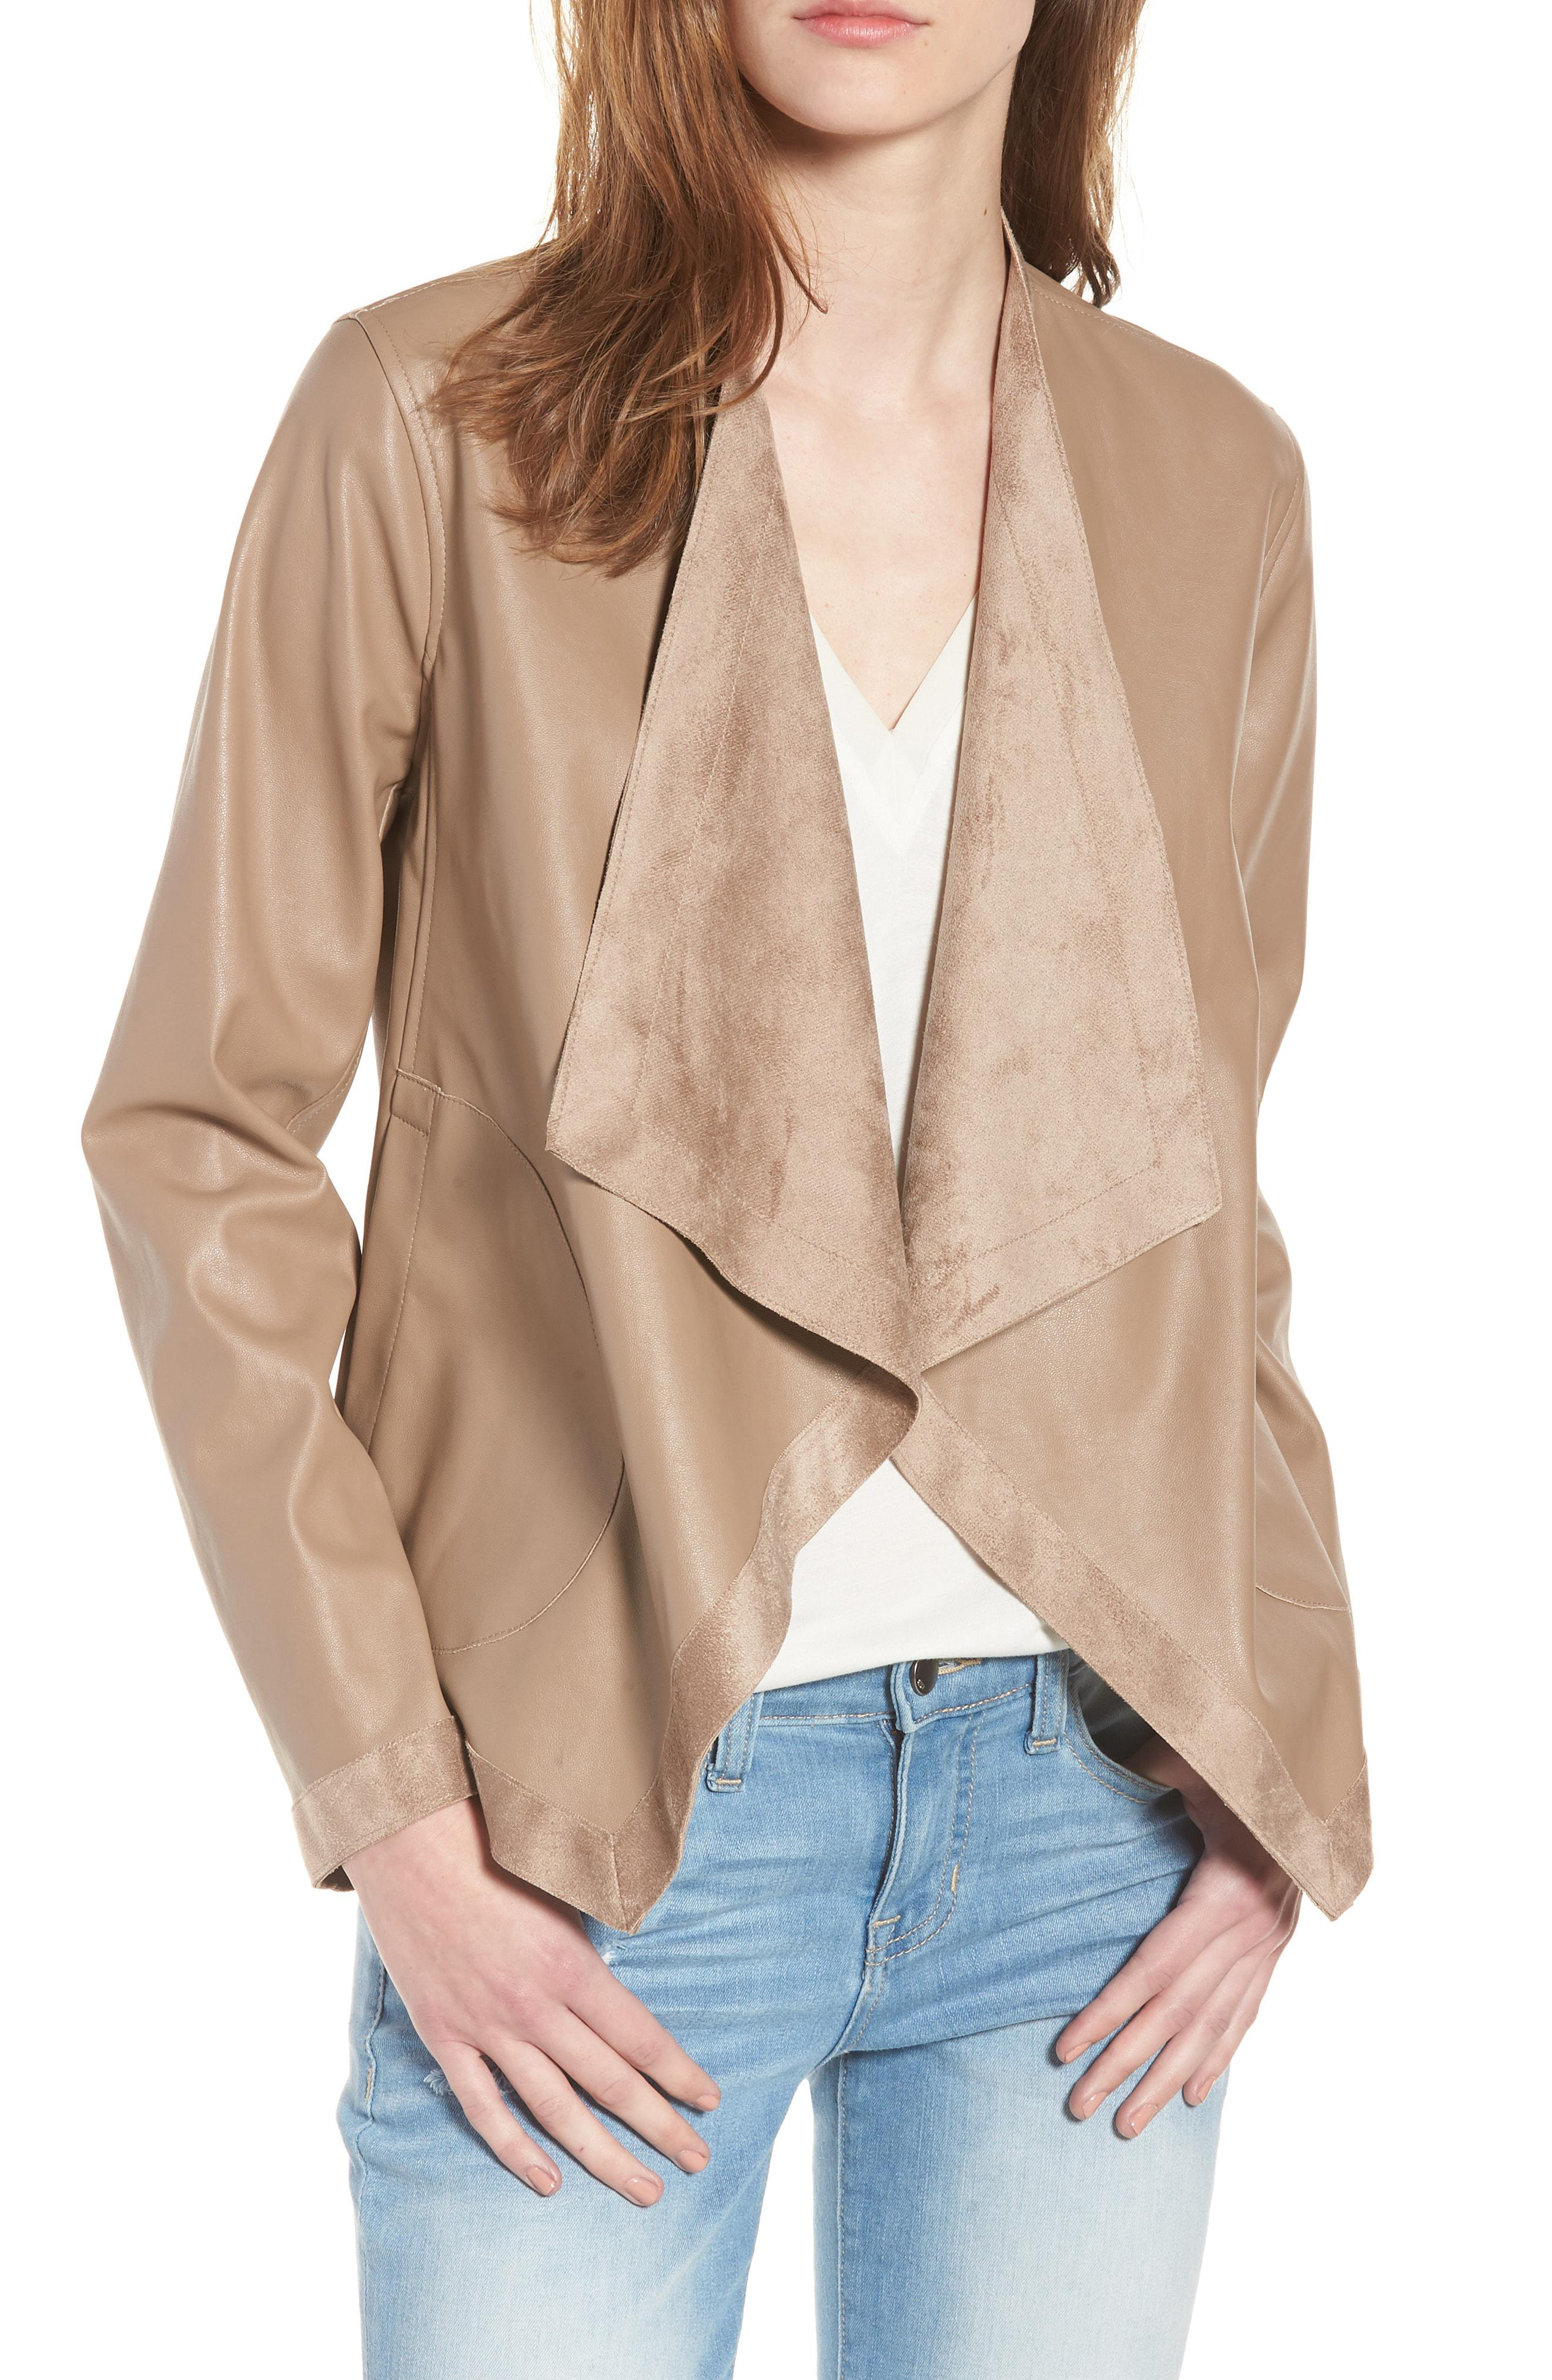 d0bfd2c3a Women's Natural Teagan Reversible Faux Leather Drape Front Jacket